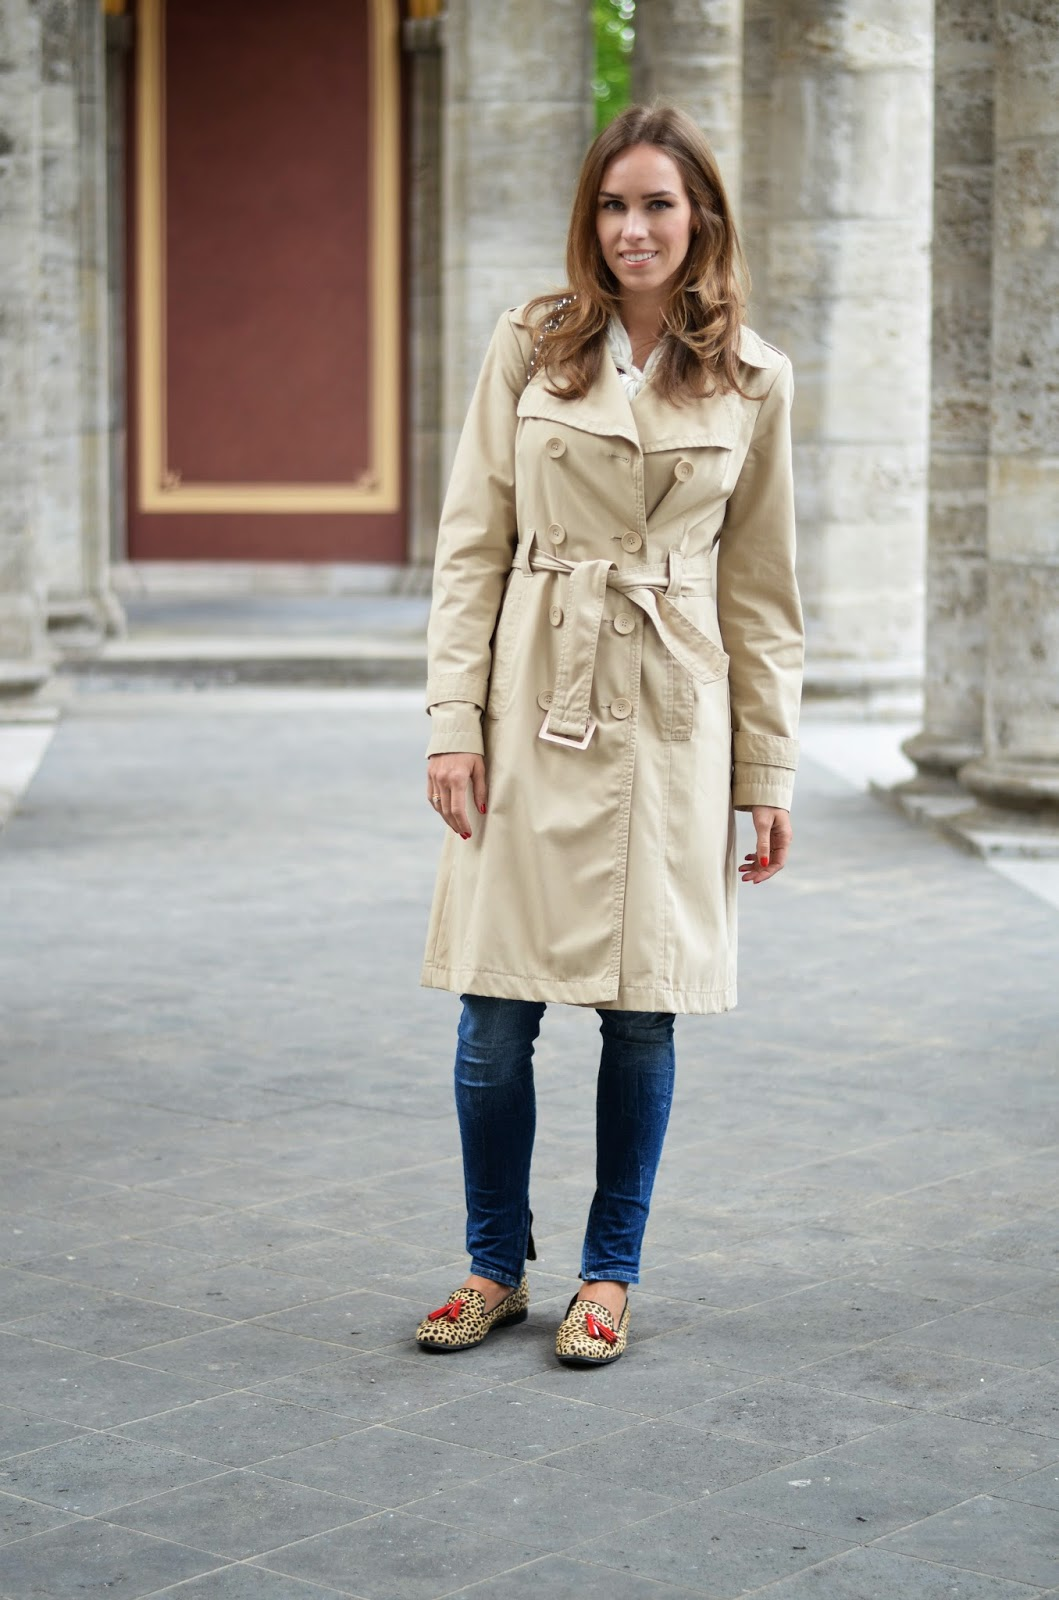 kristjaana mere street style spring outfit trench coat